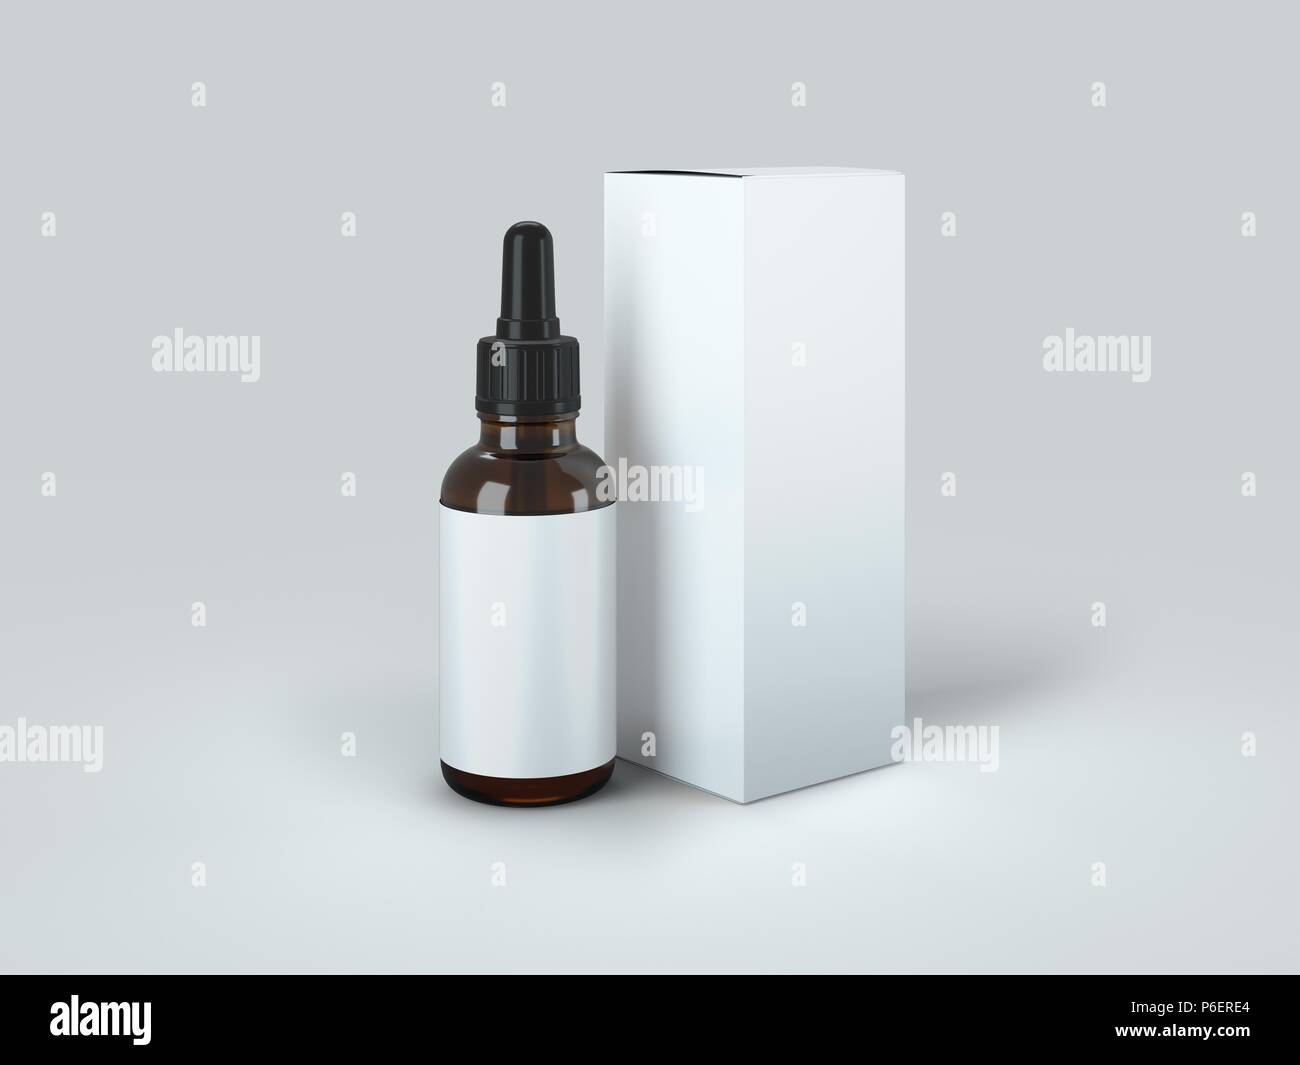 Dropper Bottle with box Mock-Up - Blank Label - Stock Image